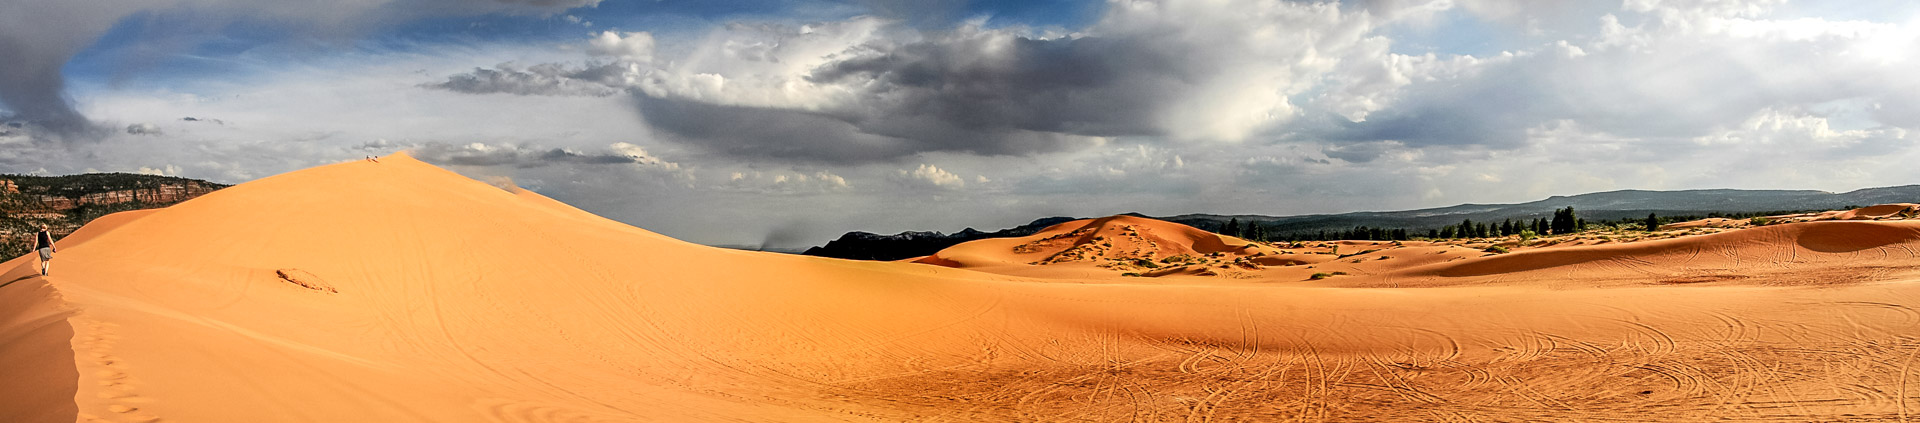 6.7. Coral Pink Sand Dunes